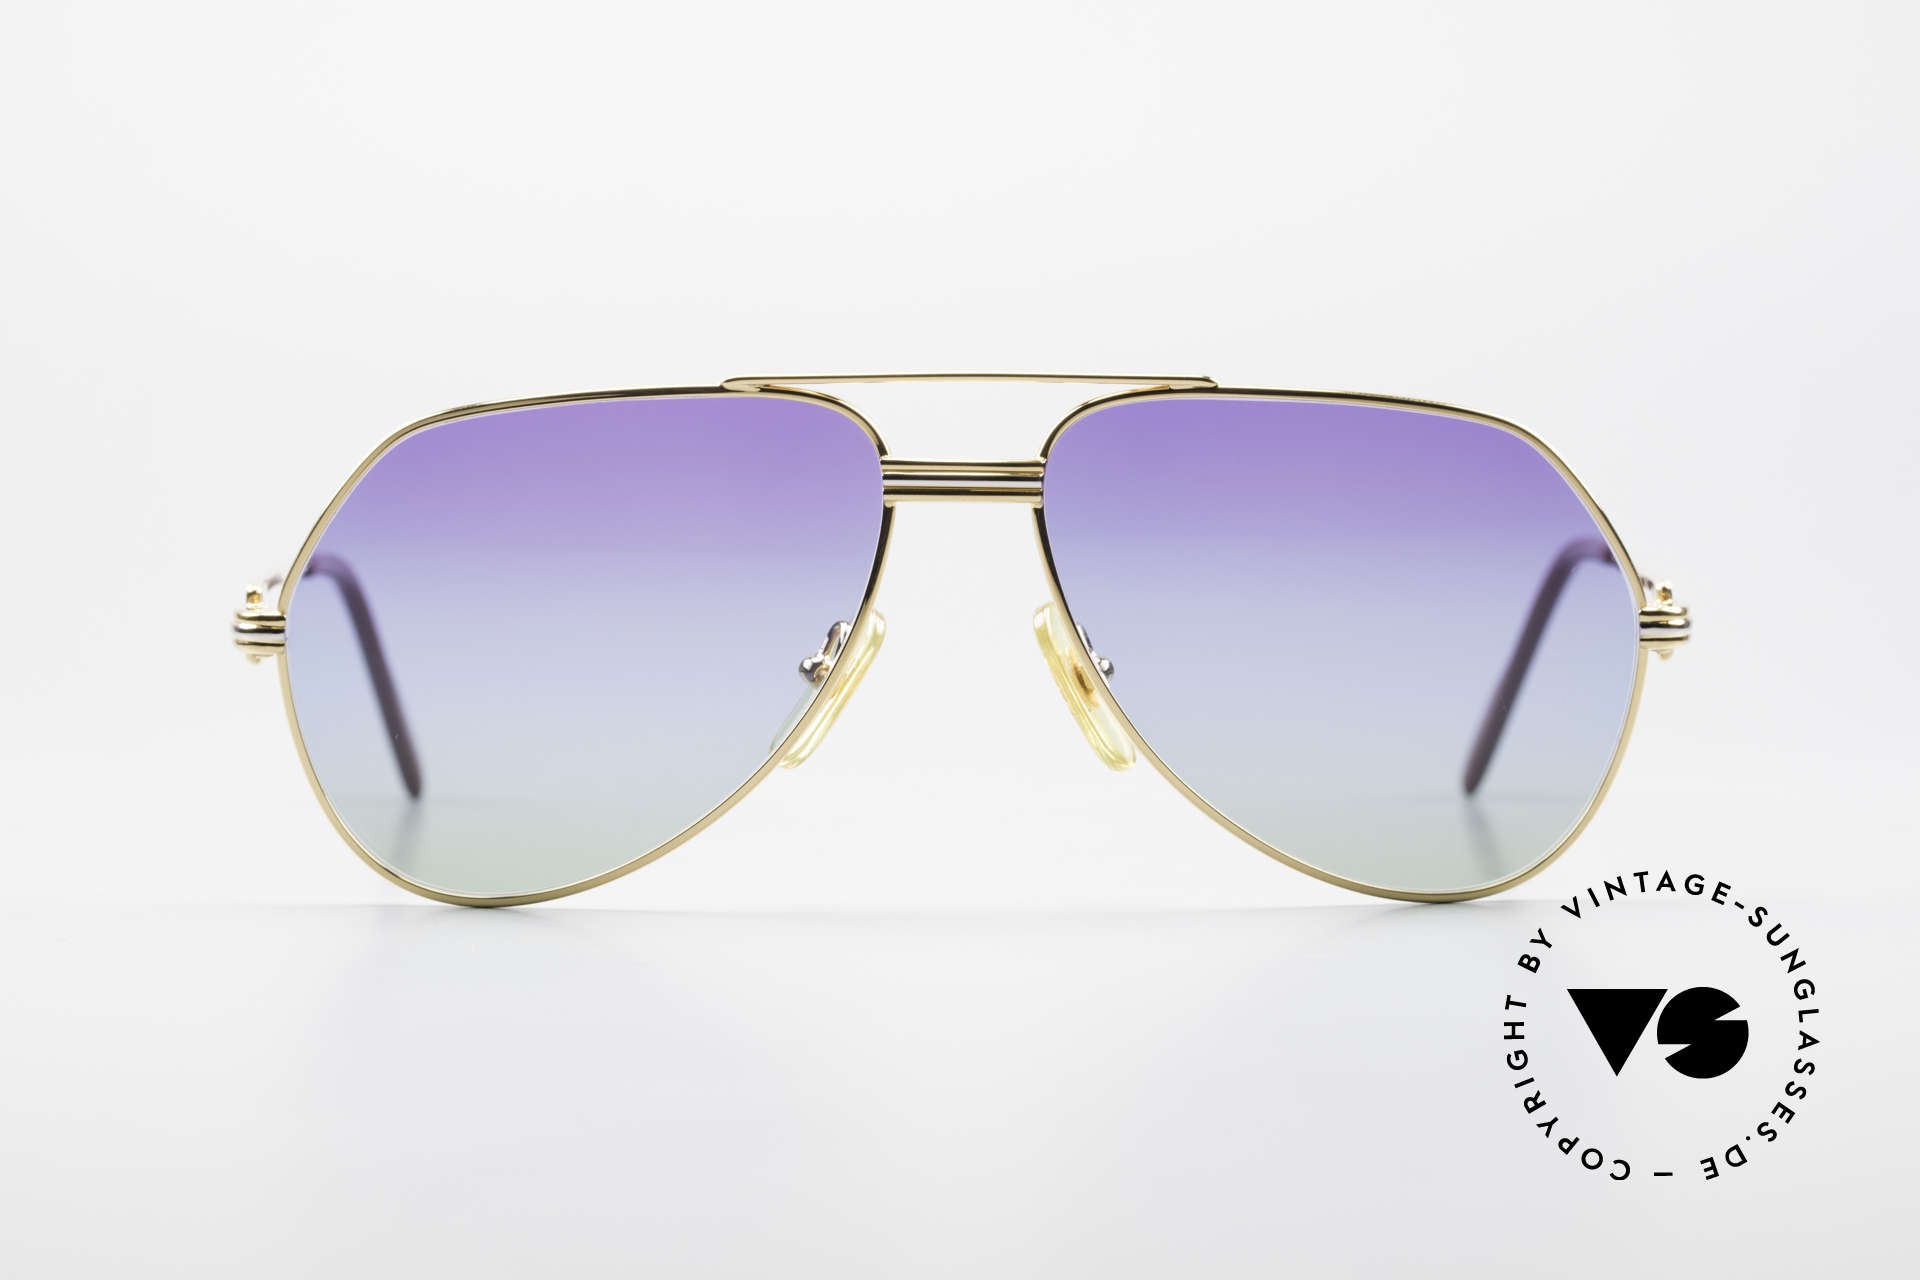 """Cartier Vendome LC - S 80's Sunglasses Polar Lights, model """"Vendome"""" was launched in 1983 & made till 1997, Made for Men and Women"""